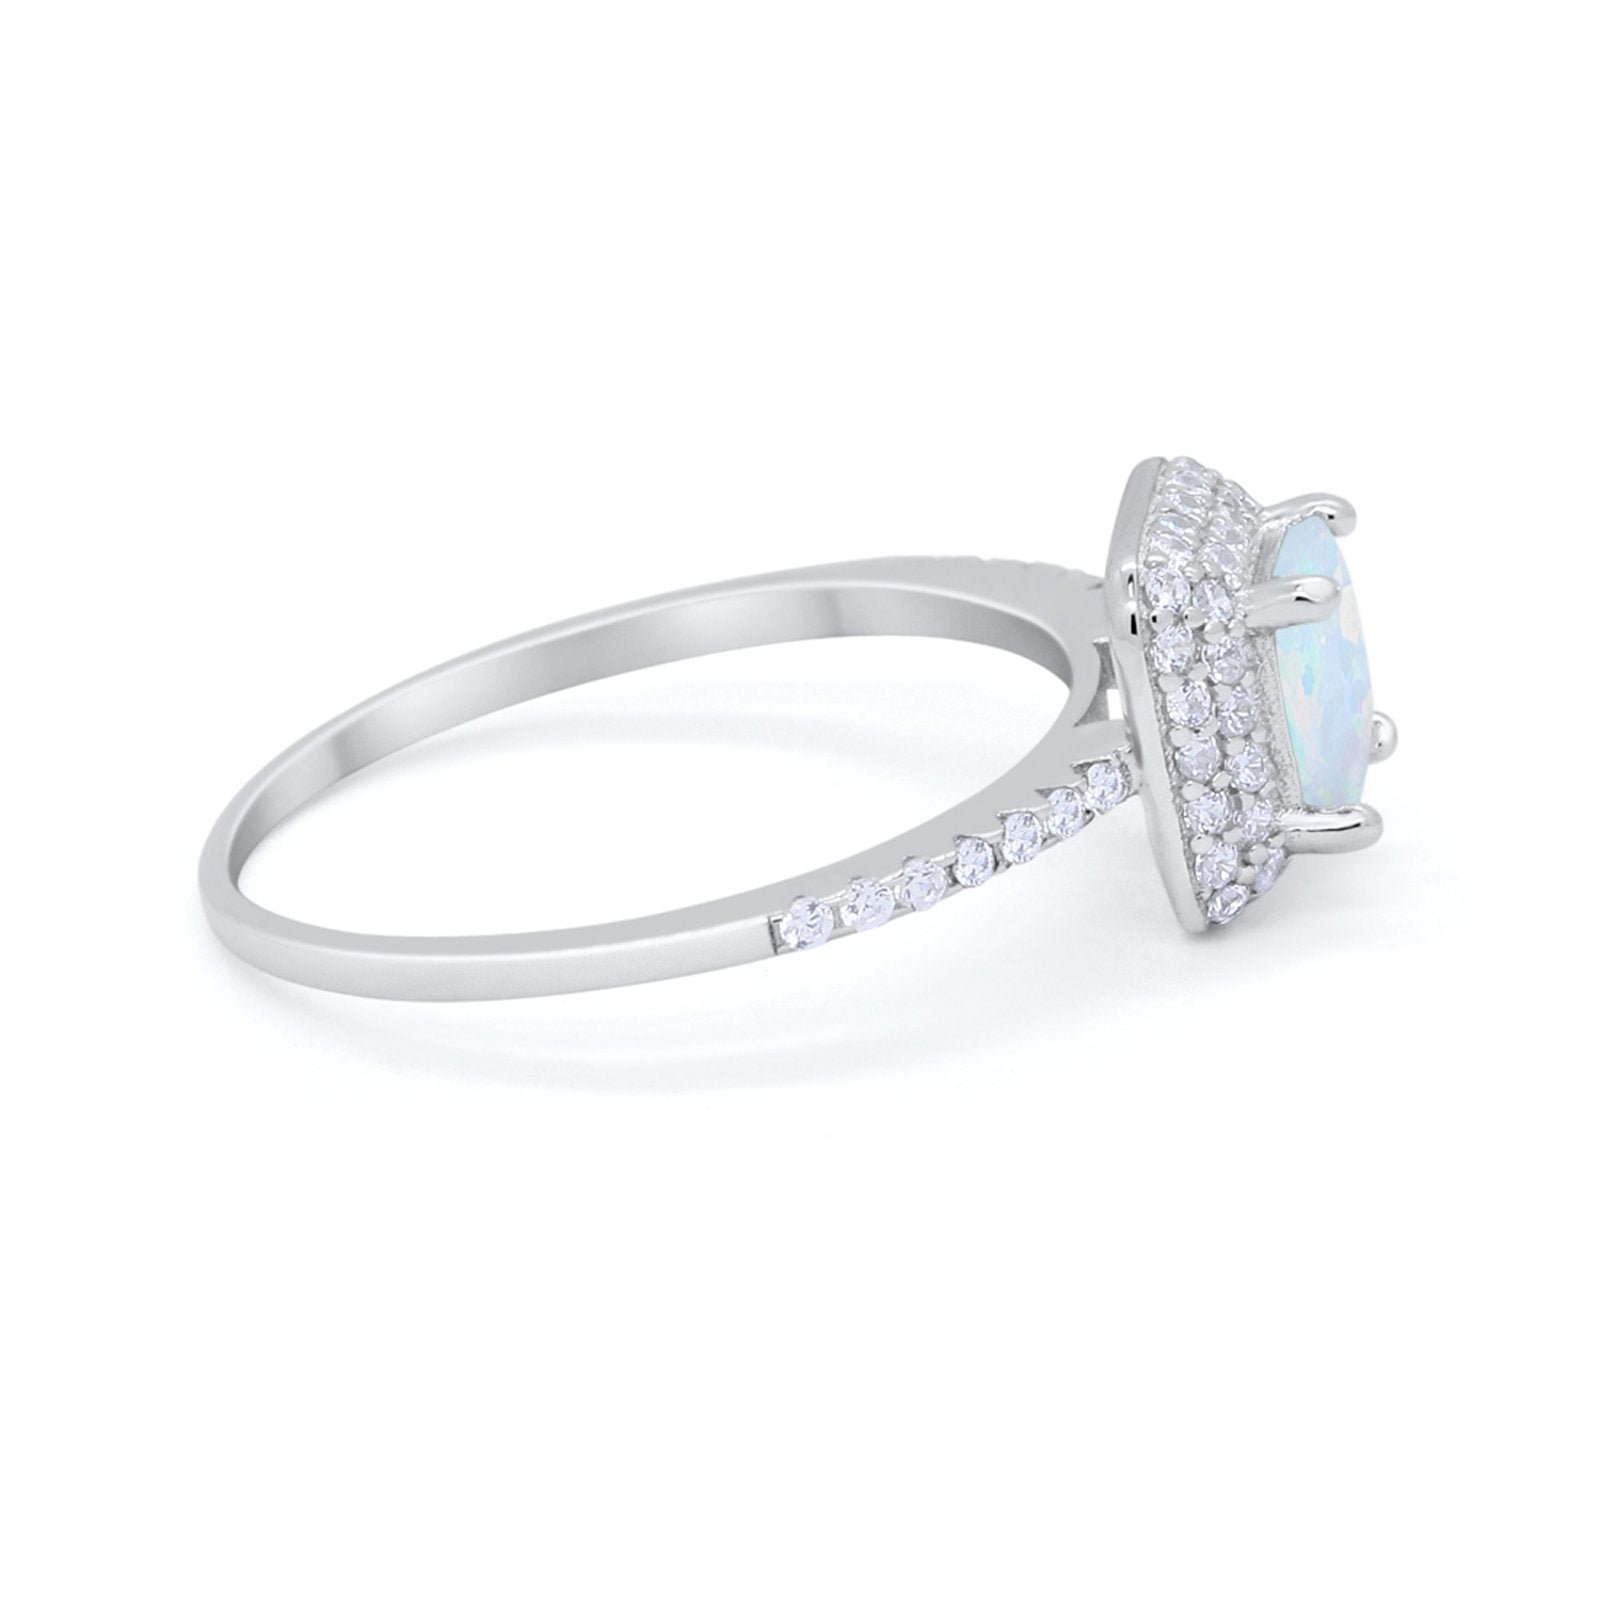 Halo Princess Cut Wedding Engagement Ring Round Cubic Zirconia 925 Sterling Silver